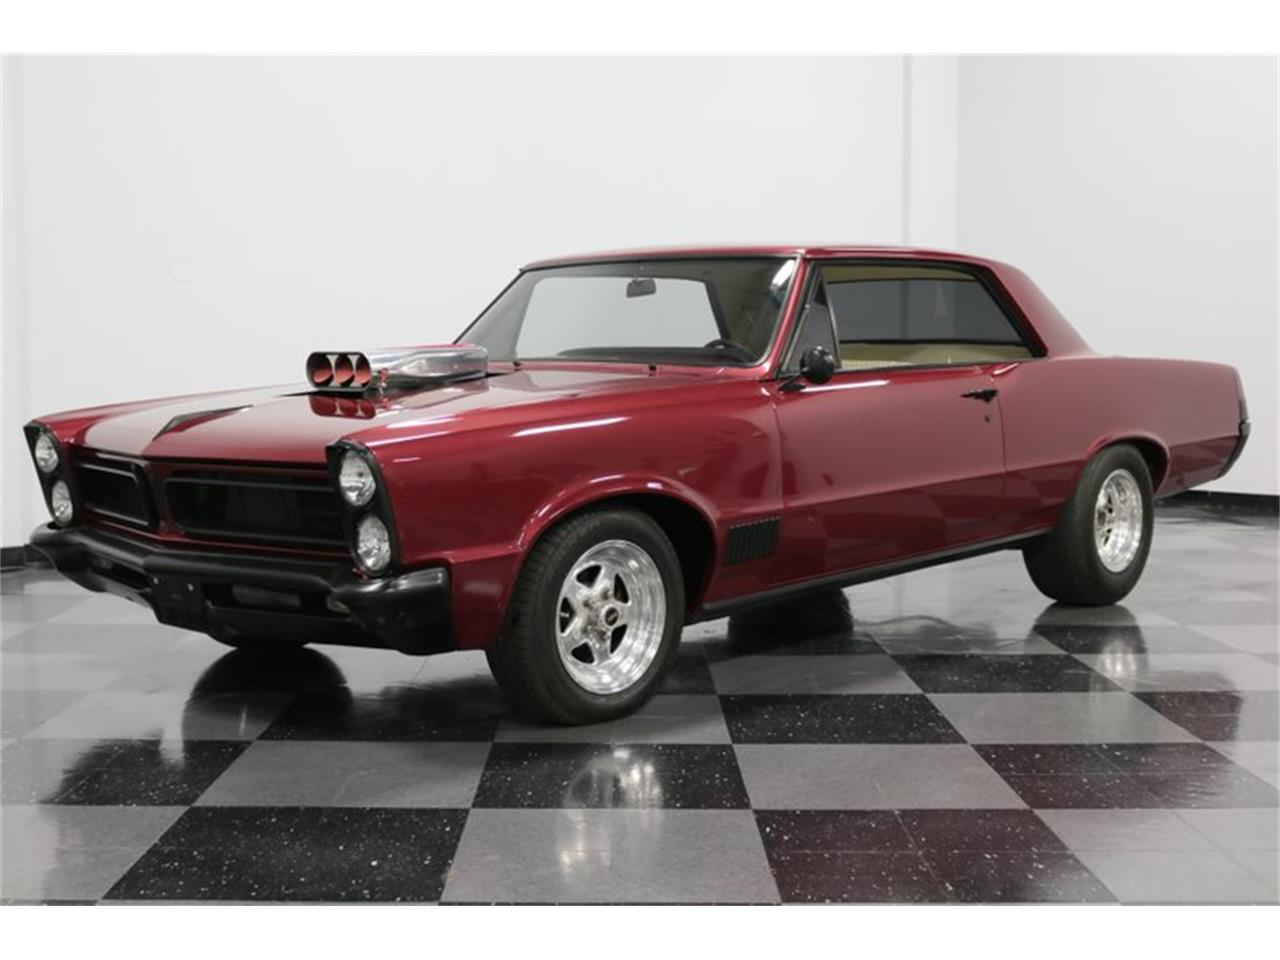 Large Picture of '65 Pontiac LeMans - $37,995.00 Offered by Streetside Classics - Dallas / Fort Worth - Q507